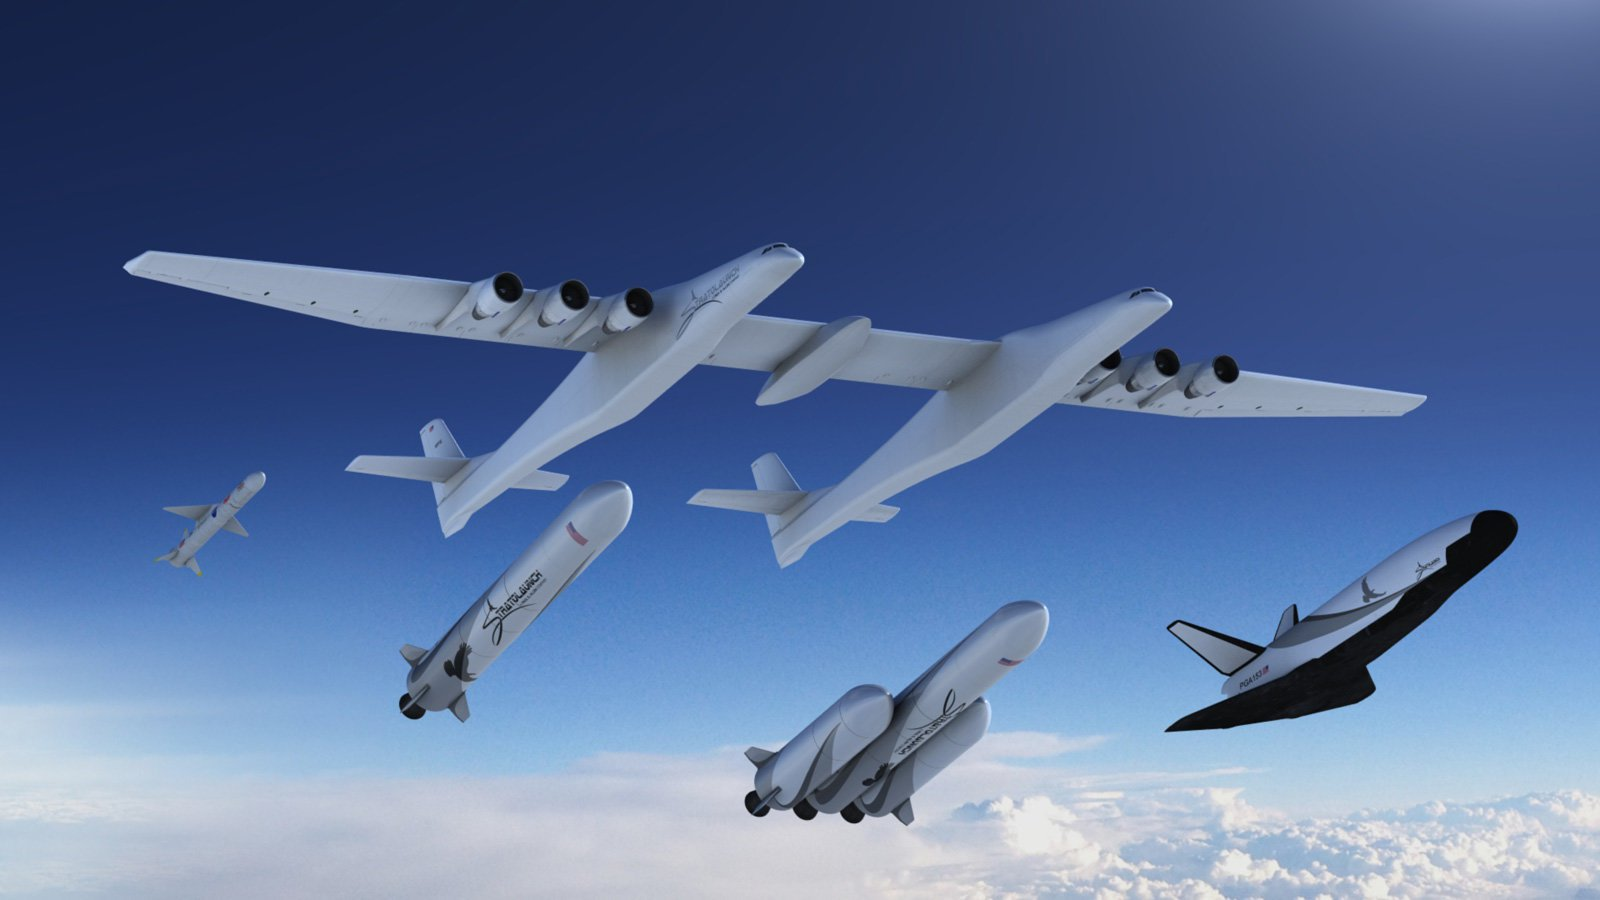 Private aerospace company Stratolaunch Systems abandoned most of their projects